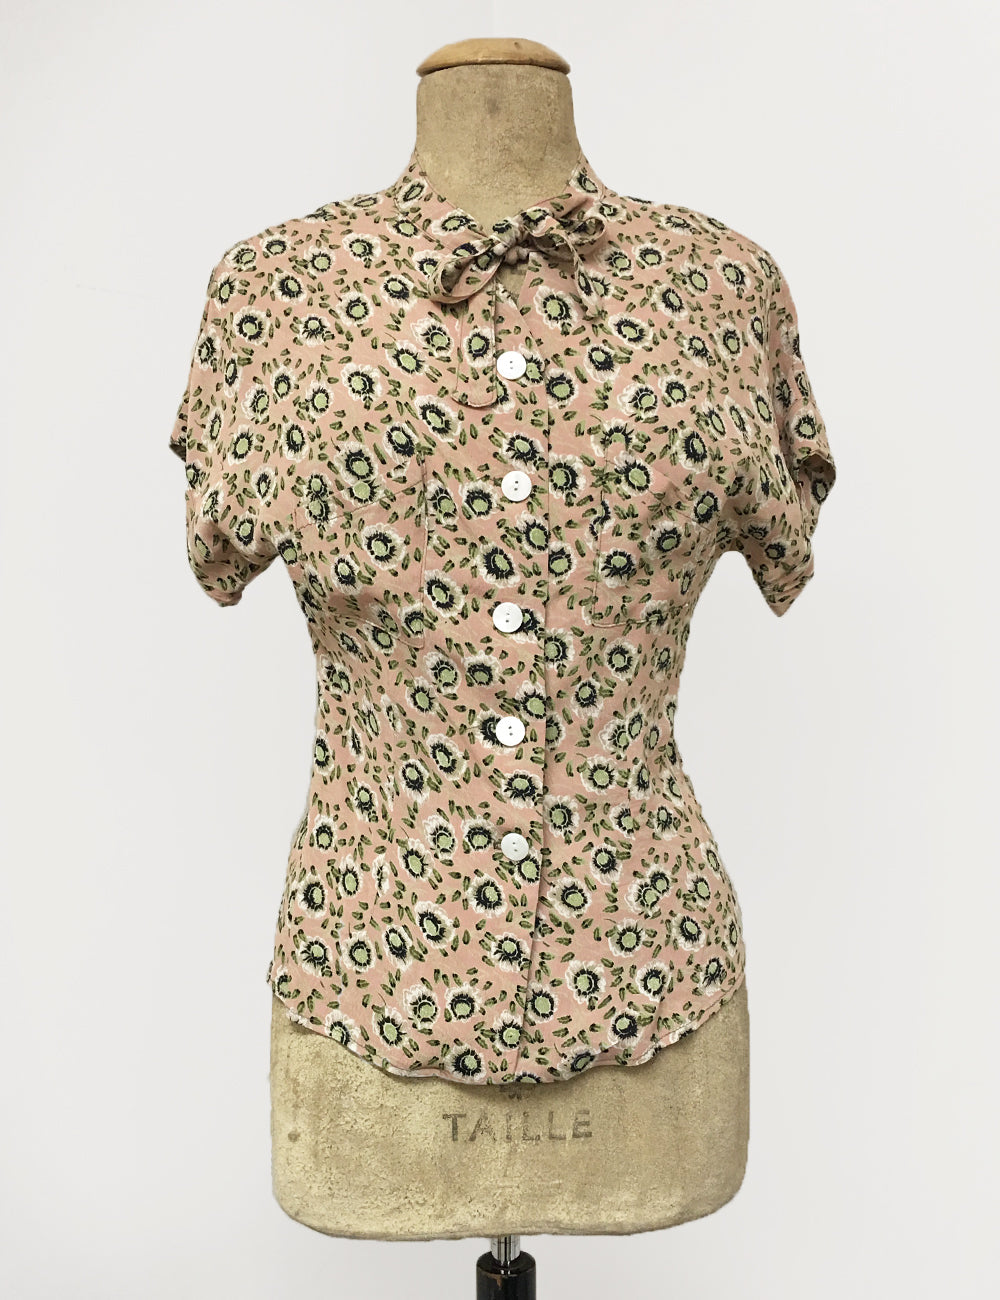 Peach & Green Pansy Floral Print 1940s Style Amanda Tie Blouse- FINAL SALE